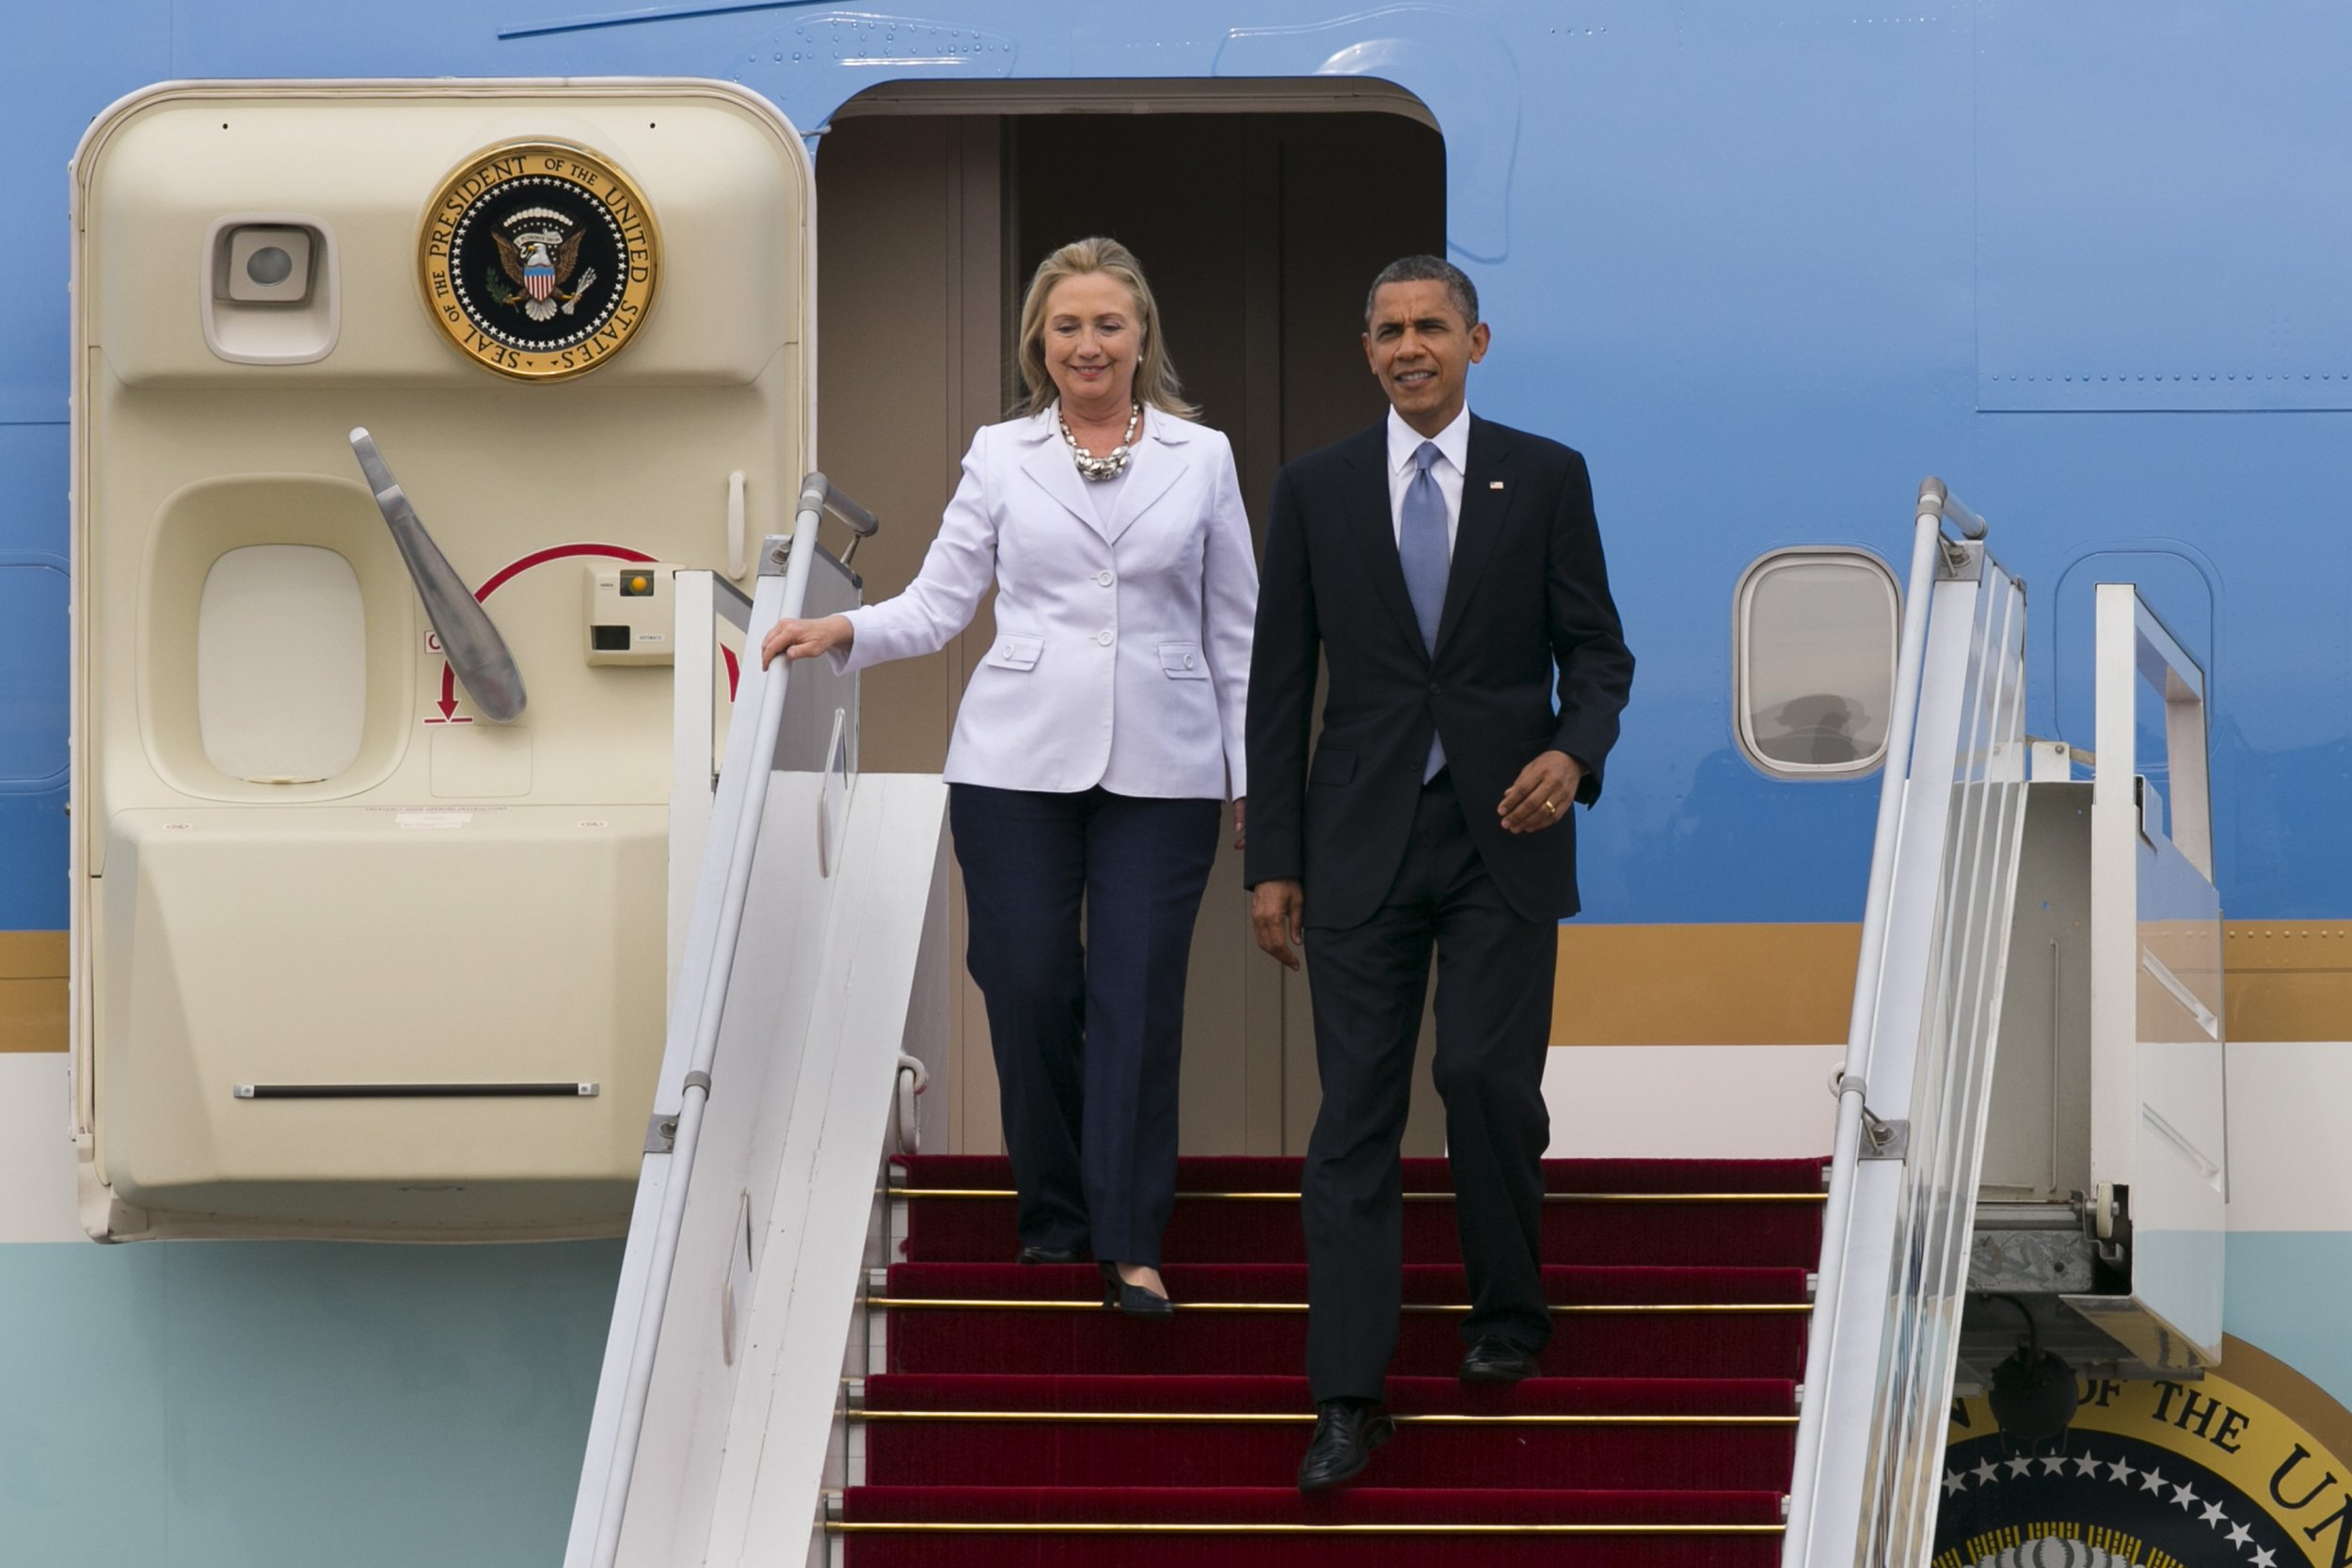 Barack Obama and Hillary Clinton landing in Burma